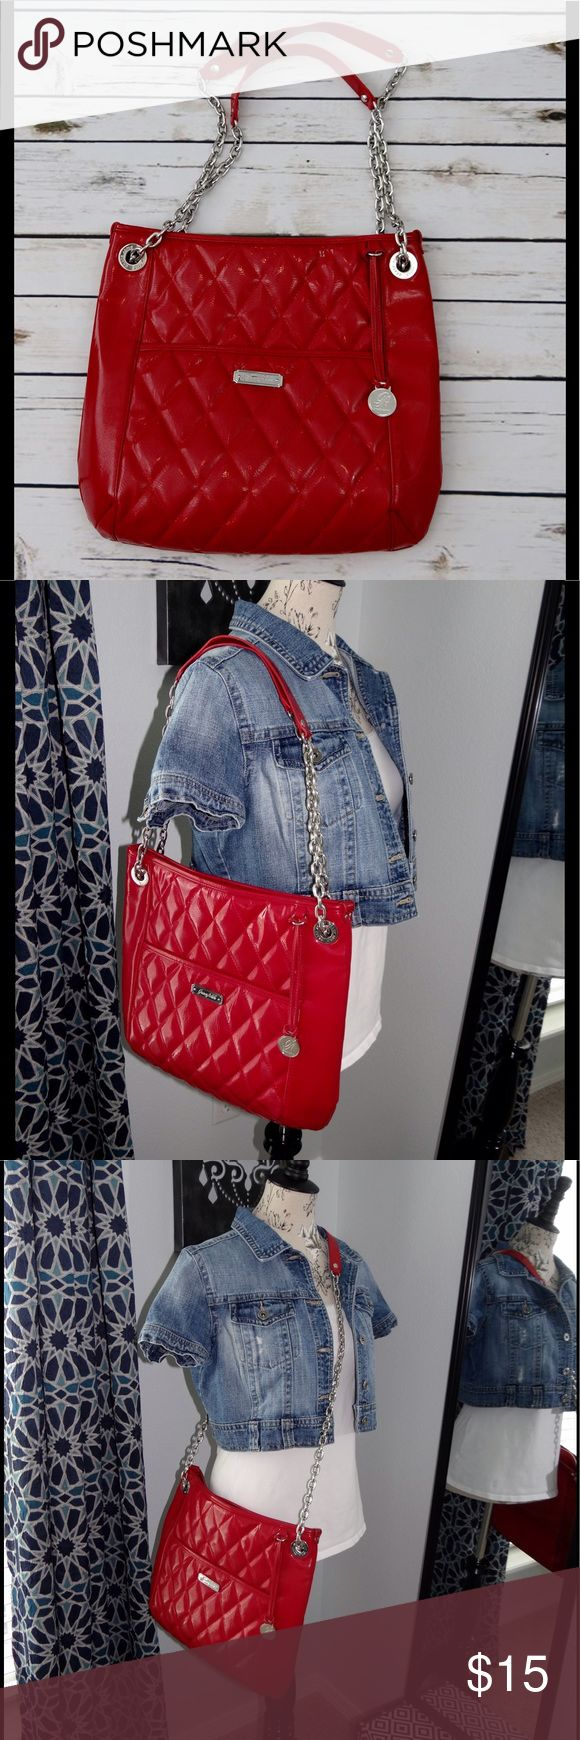 Grace Adele shoulder/cross body red bag Grace Adele shoulder/cross body red bag. Gently used, good, clean condition. Has a few small/minor scuffs that are hard to see. The bags straps are movable (NOT removable) to change from a shoulder bag to a cross body bag (great for when you are out shopping without a cart 🛒). Shinny red material. Similar to a patent leather. Chrome accents. 14 inches across and 13 inches deep. Smoke free and pet free home. Grace Adele Bags